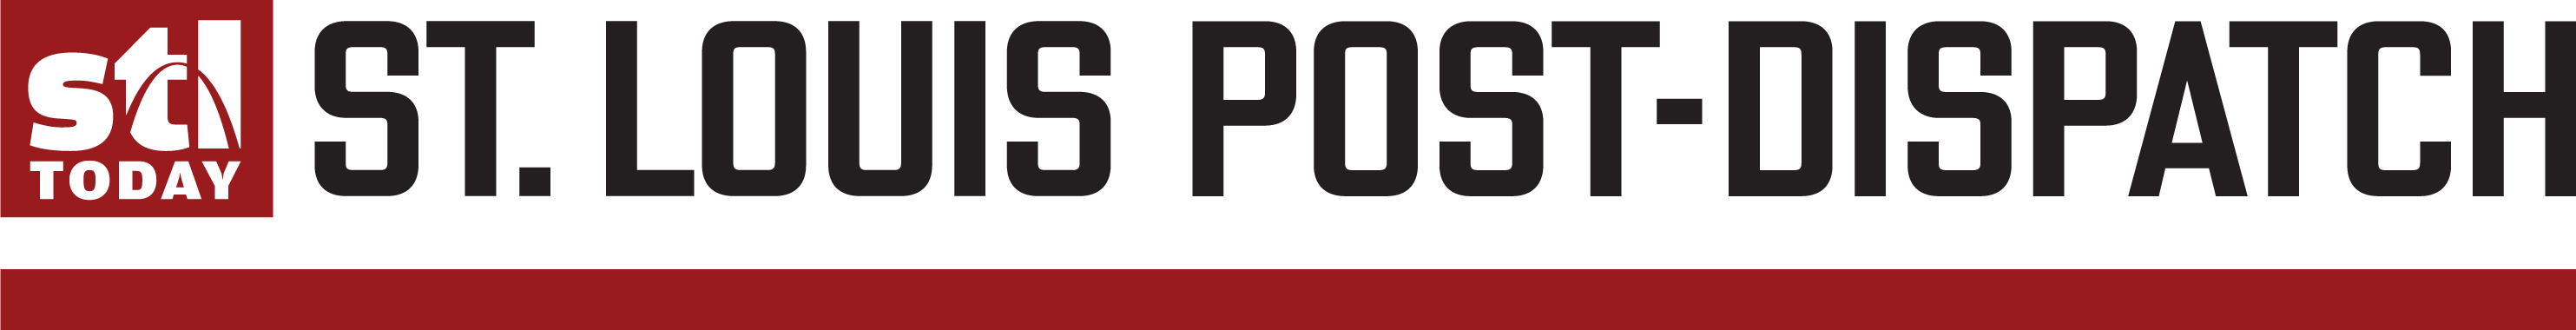 St. Louis Post-Dispatch Logo